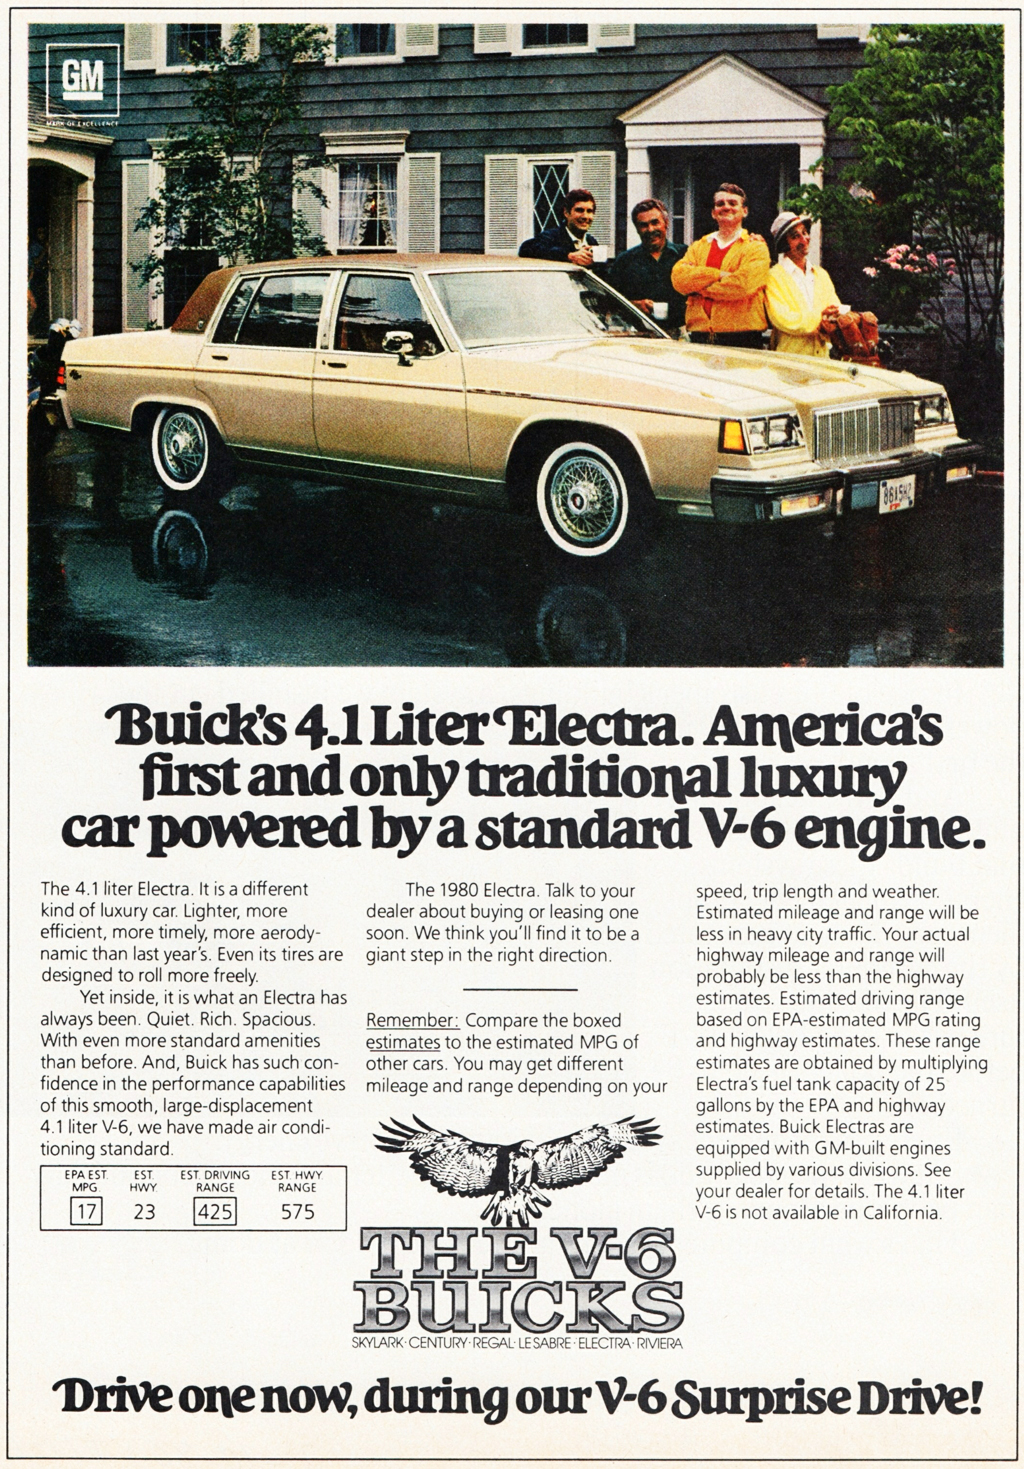 Buick Electra Ad